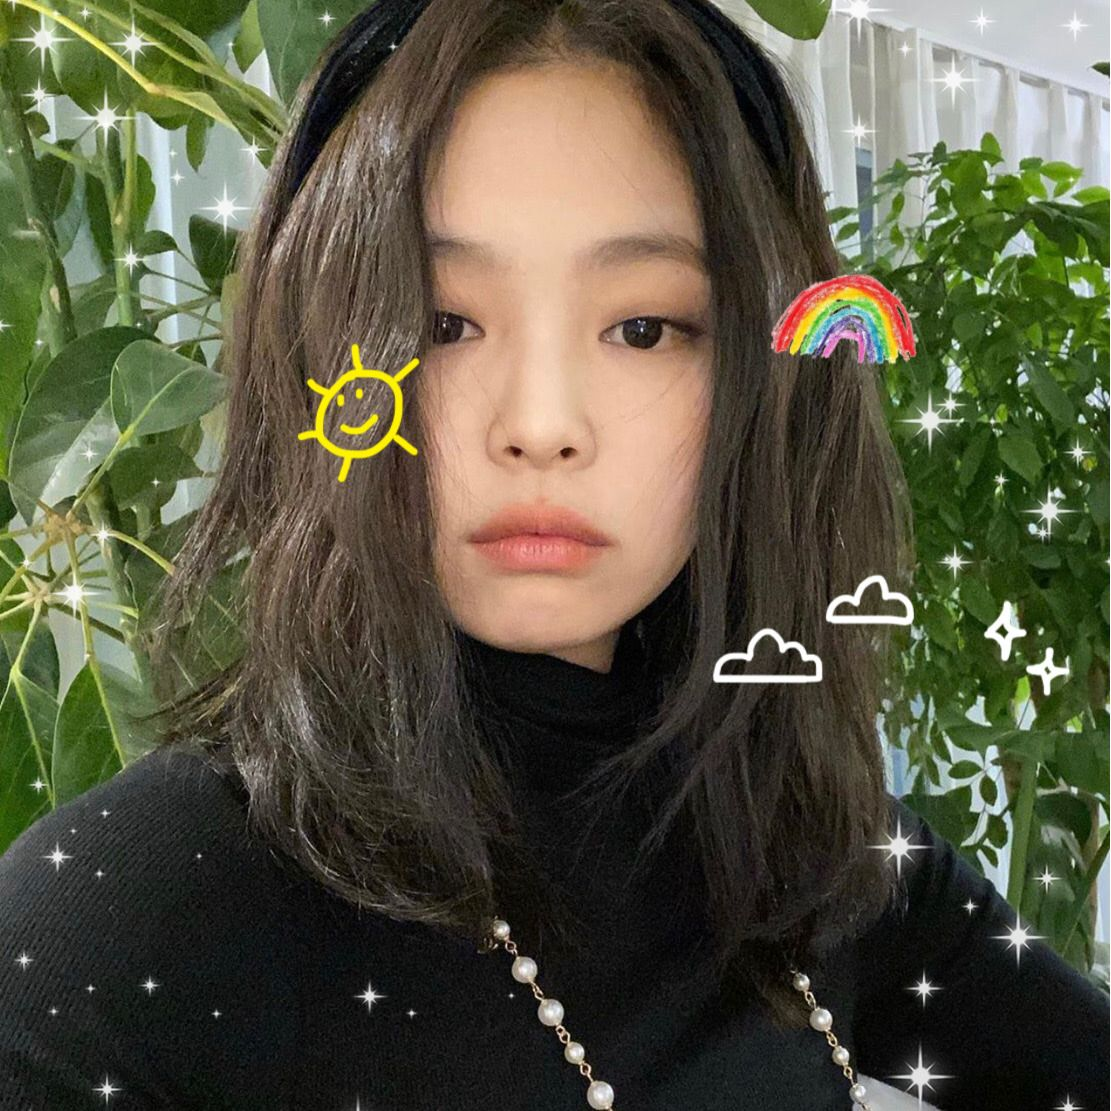 Iris Kpop Girls Icons All Requested Loona S Kpop Girls Girl Icons Blackpink Jennie